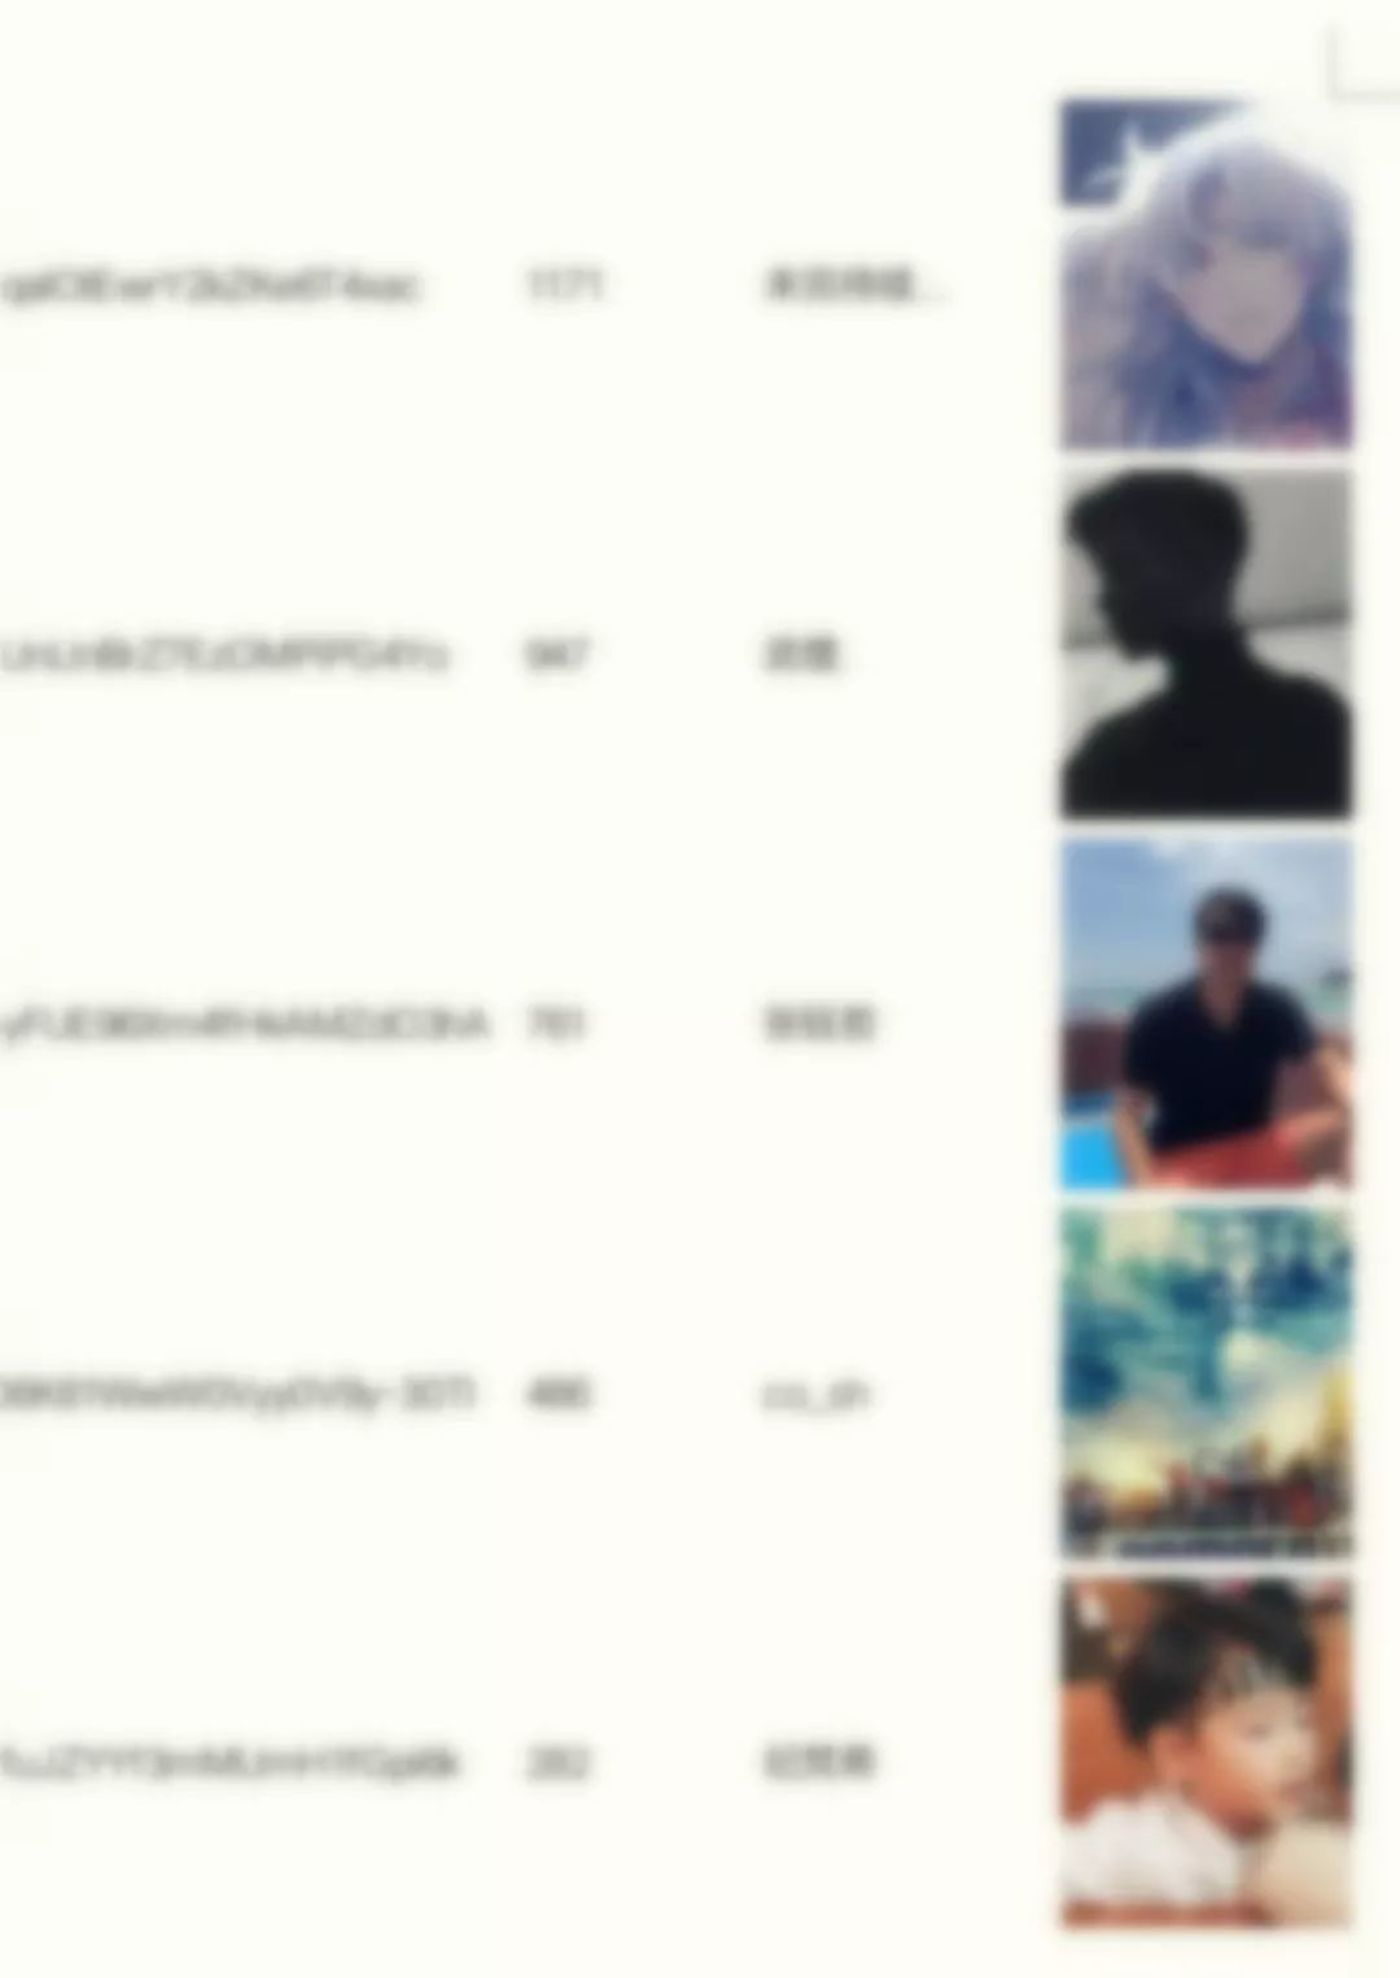 This is a partial screenshot of the avatar and ID to avoid unnecessary information disclosure. I blur the picture here.